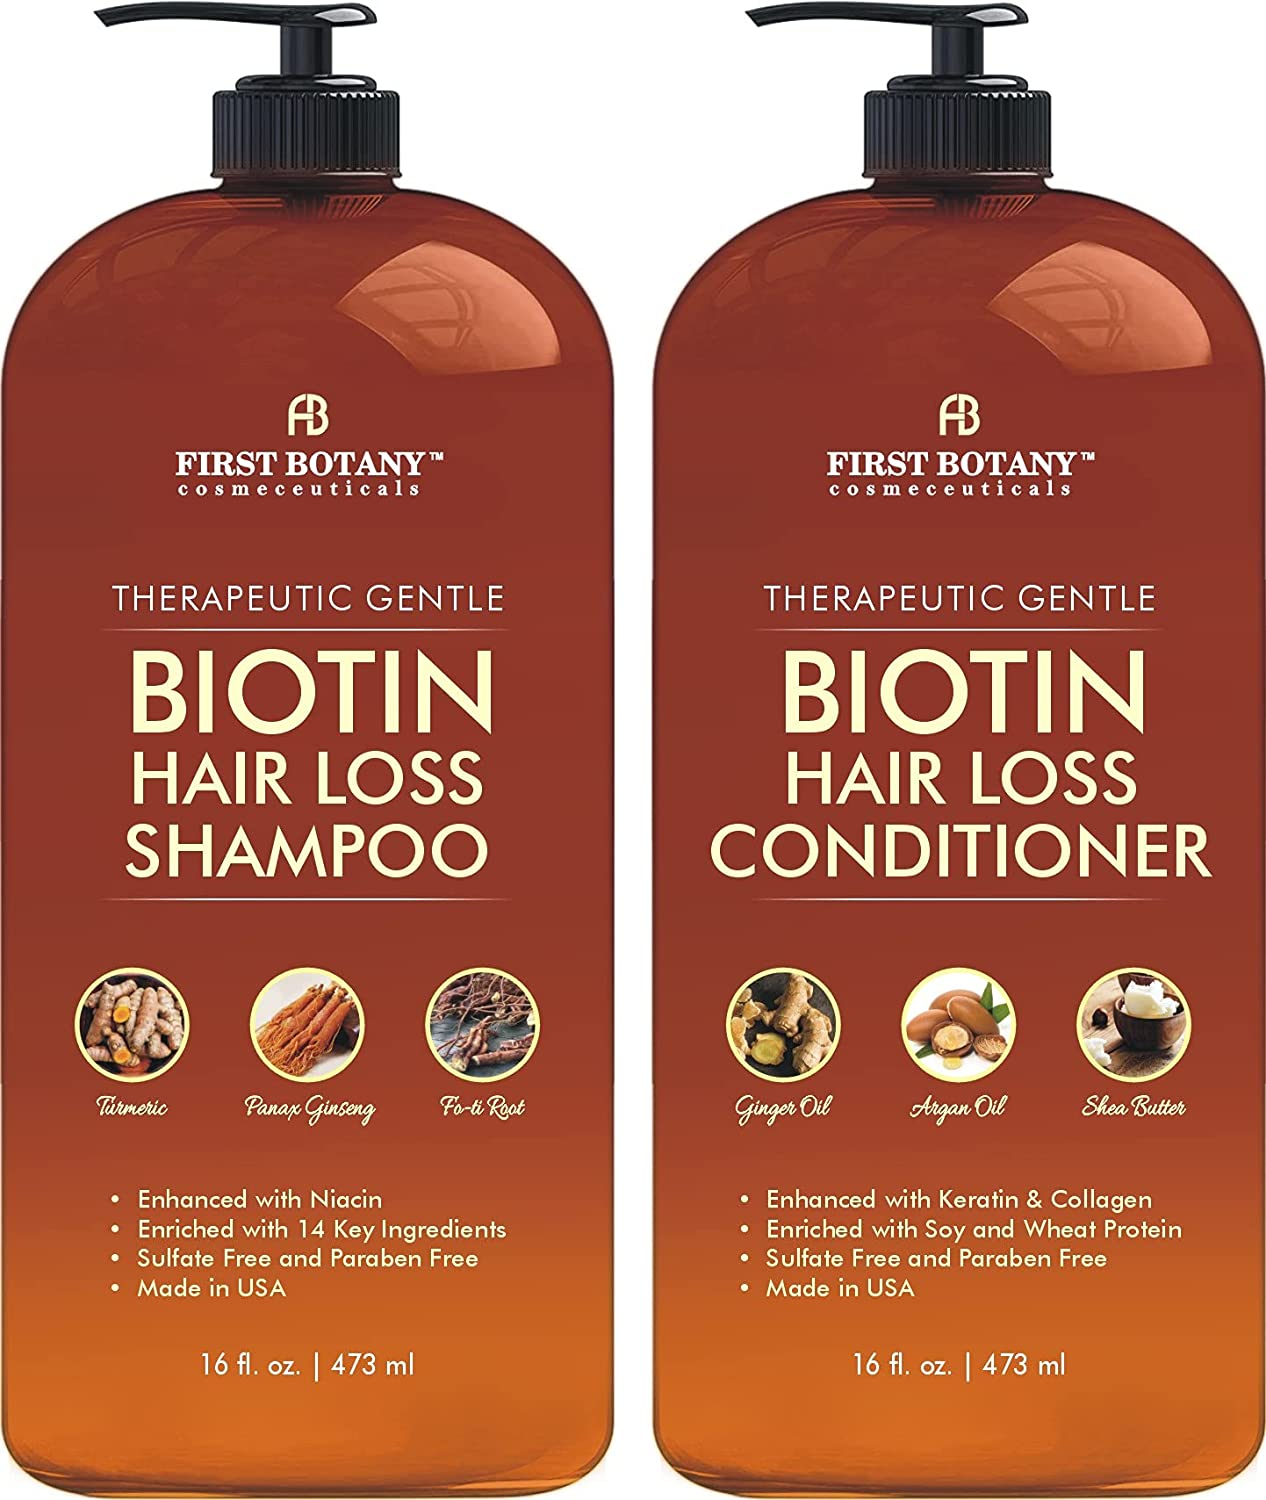 Hair Growth Limited 2021 autumn and winter new time trial price Shampoo Conditioner Set - S Loss Anti An Biotin